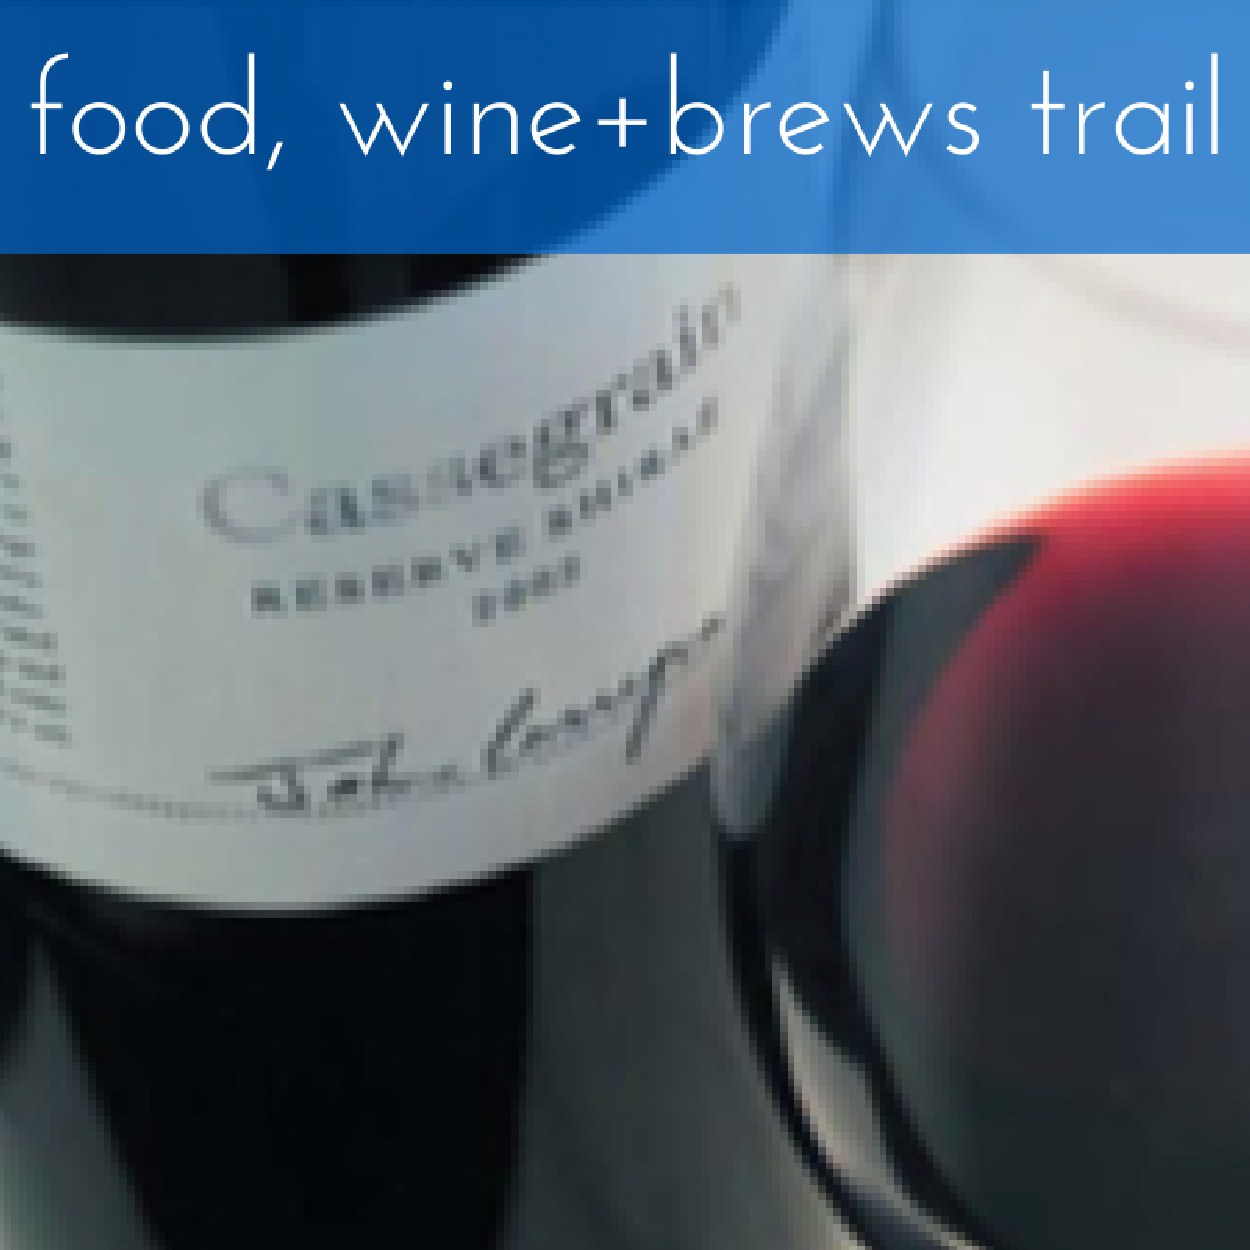 Food, wine and brews trail of Port Macquarie